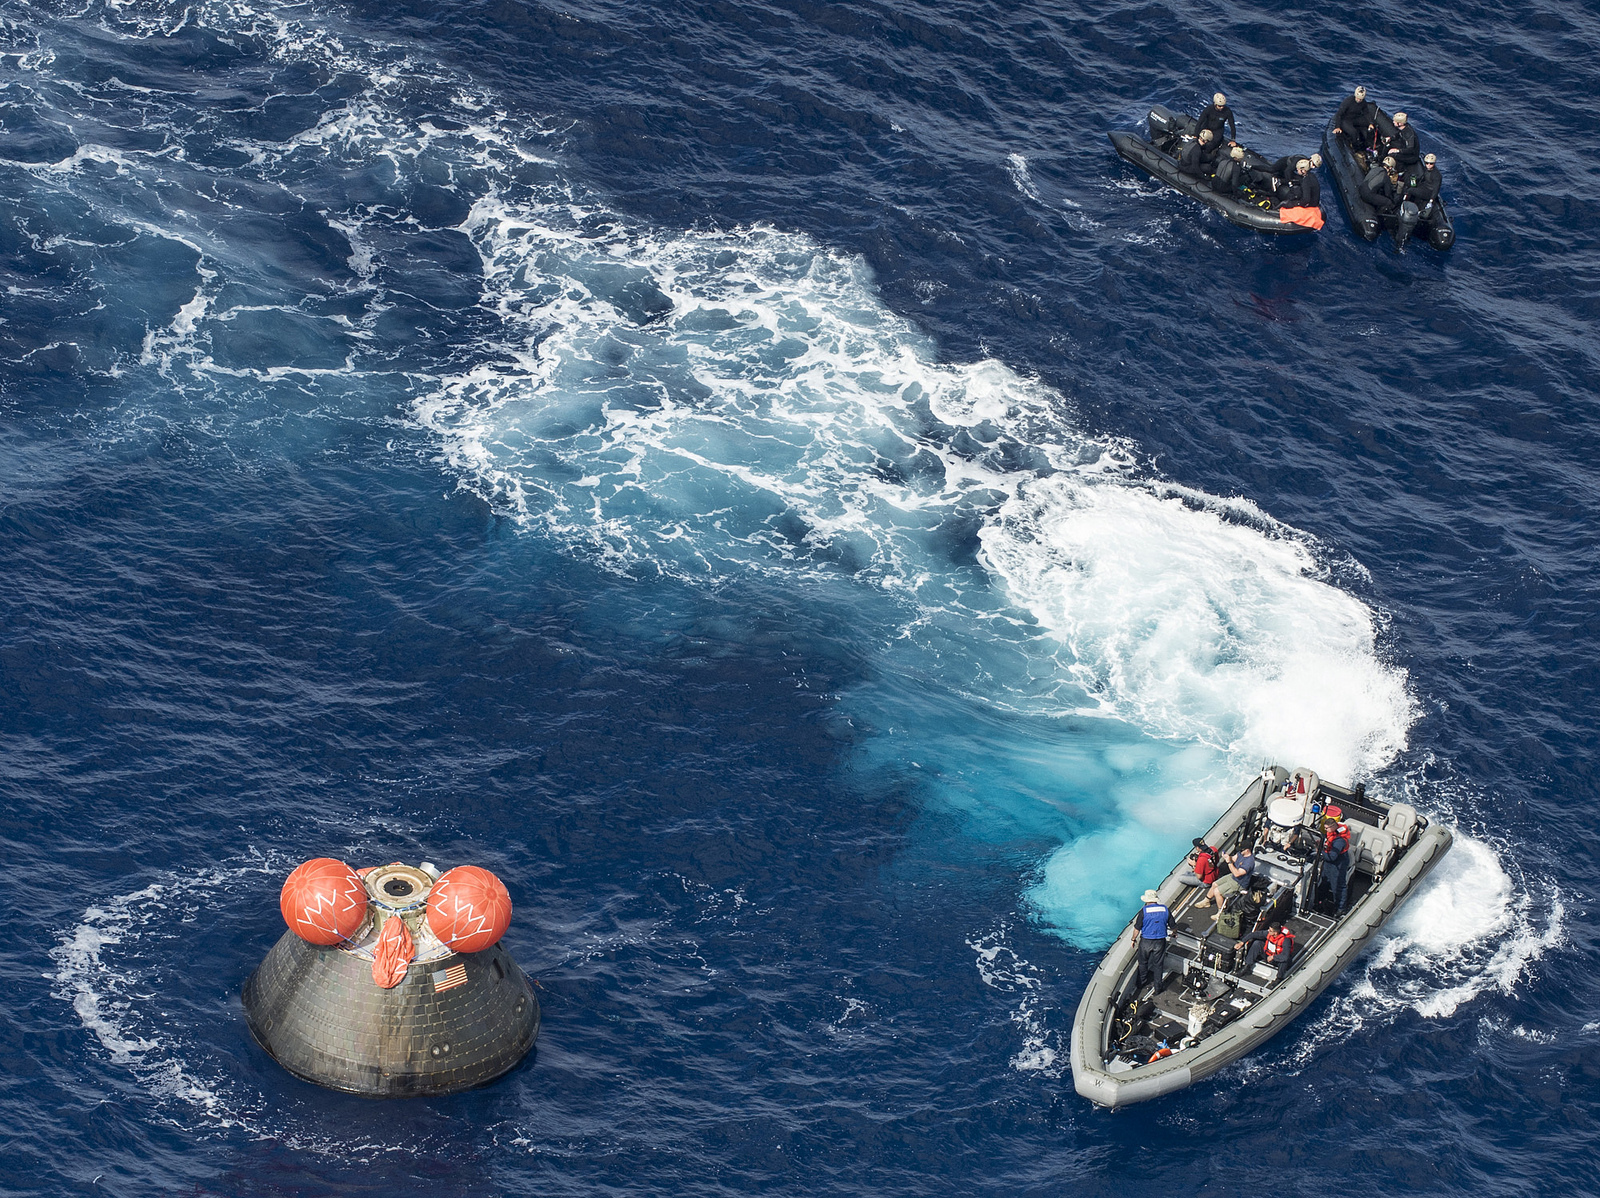 U.S. Navy divers approach the Orion spacecraft in the Pacific Ocean. Two of the capsule's five self-righting airbags are inflated. Credit: U.S. Navy photo by Mass Communication Specialist 1st Class Charles White